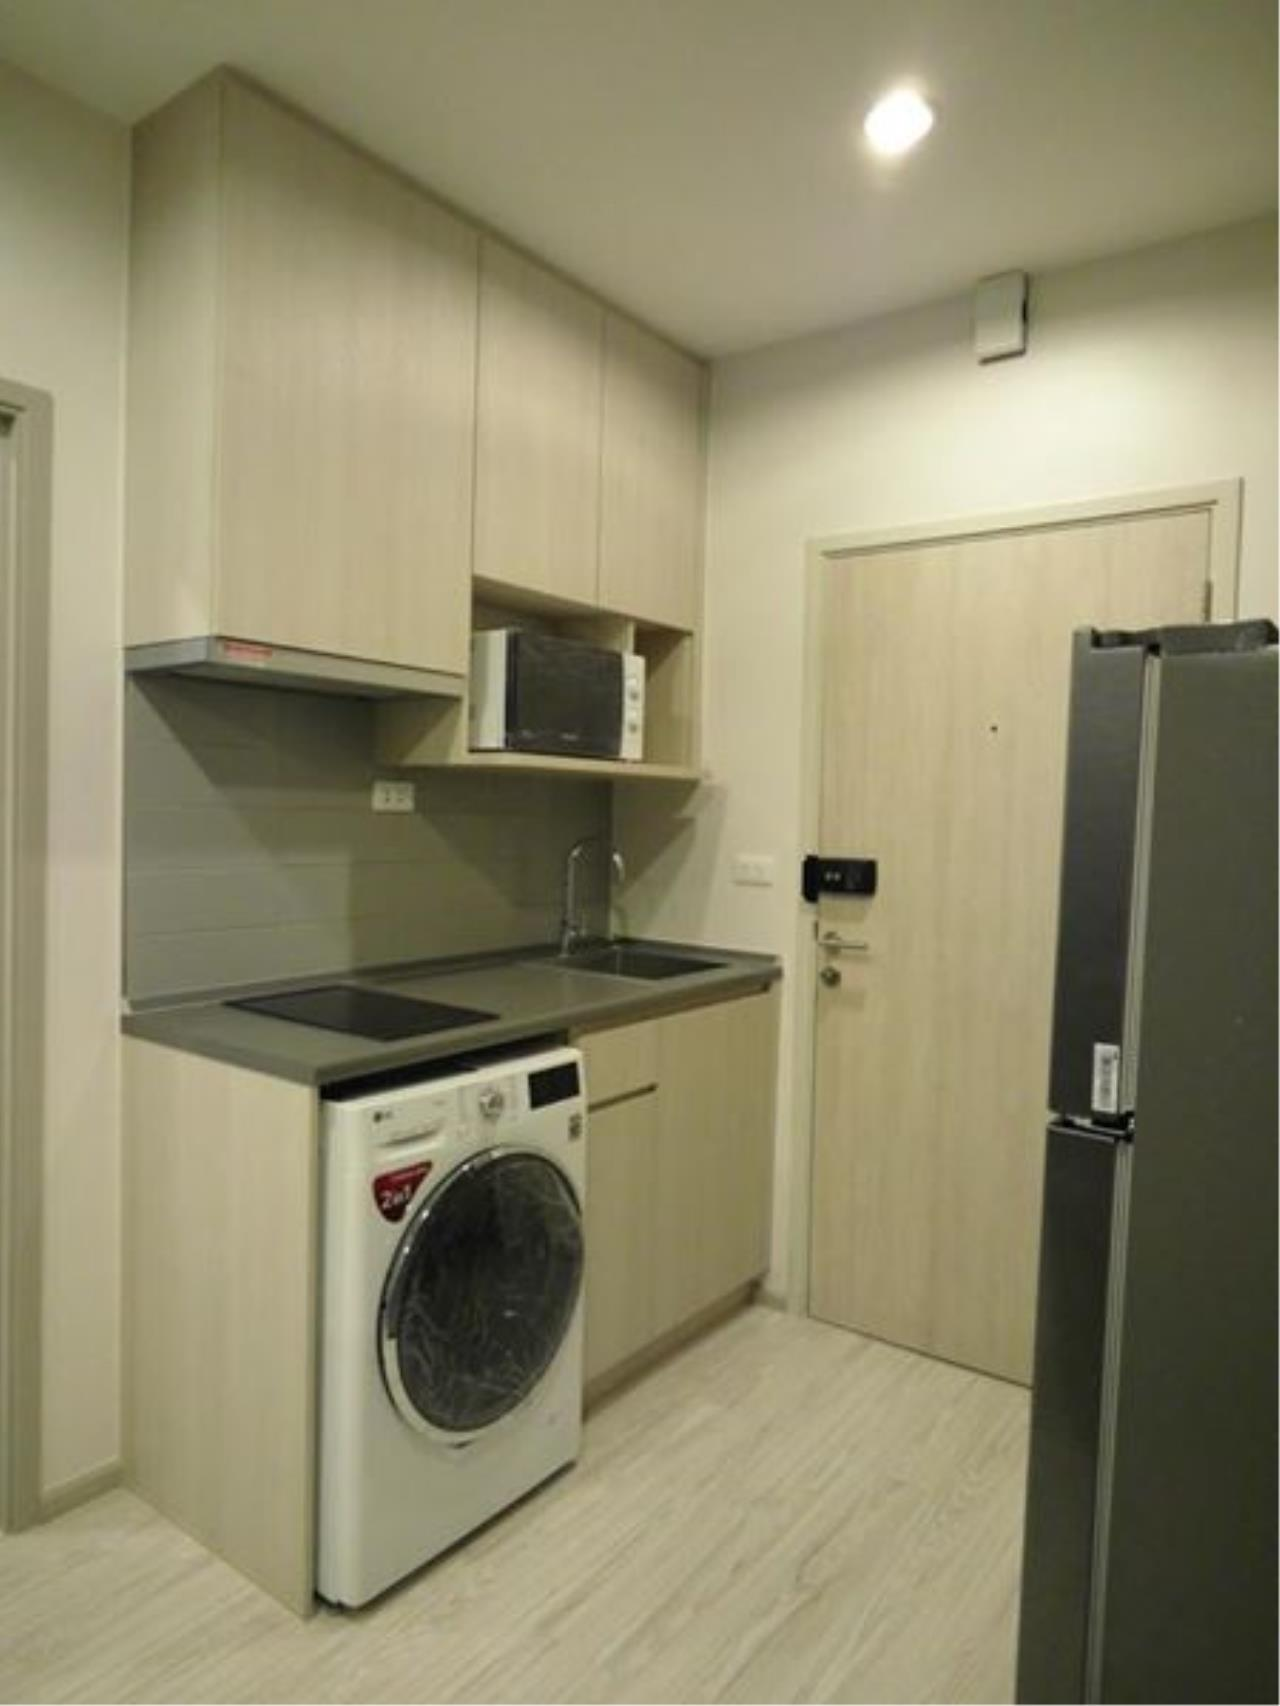 RE/MAX All Star Realty Agency's Ideo Mobi Eastgate, 1 bedroom, high floor for rent. Near BTS Bangna 15